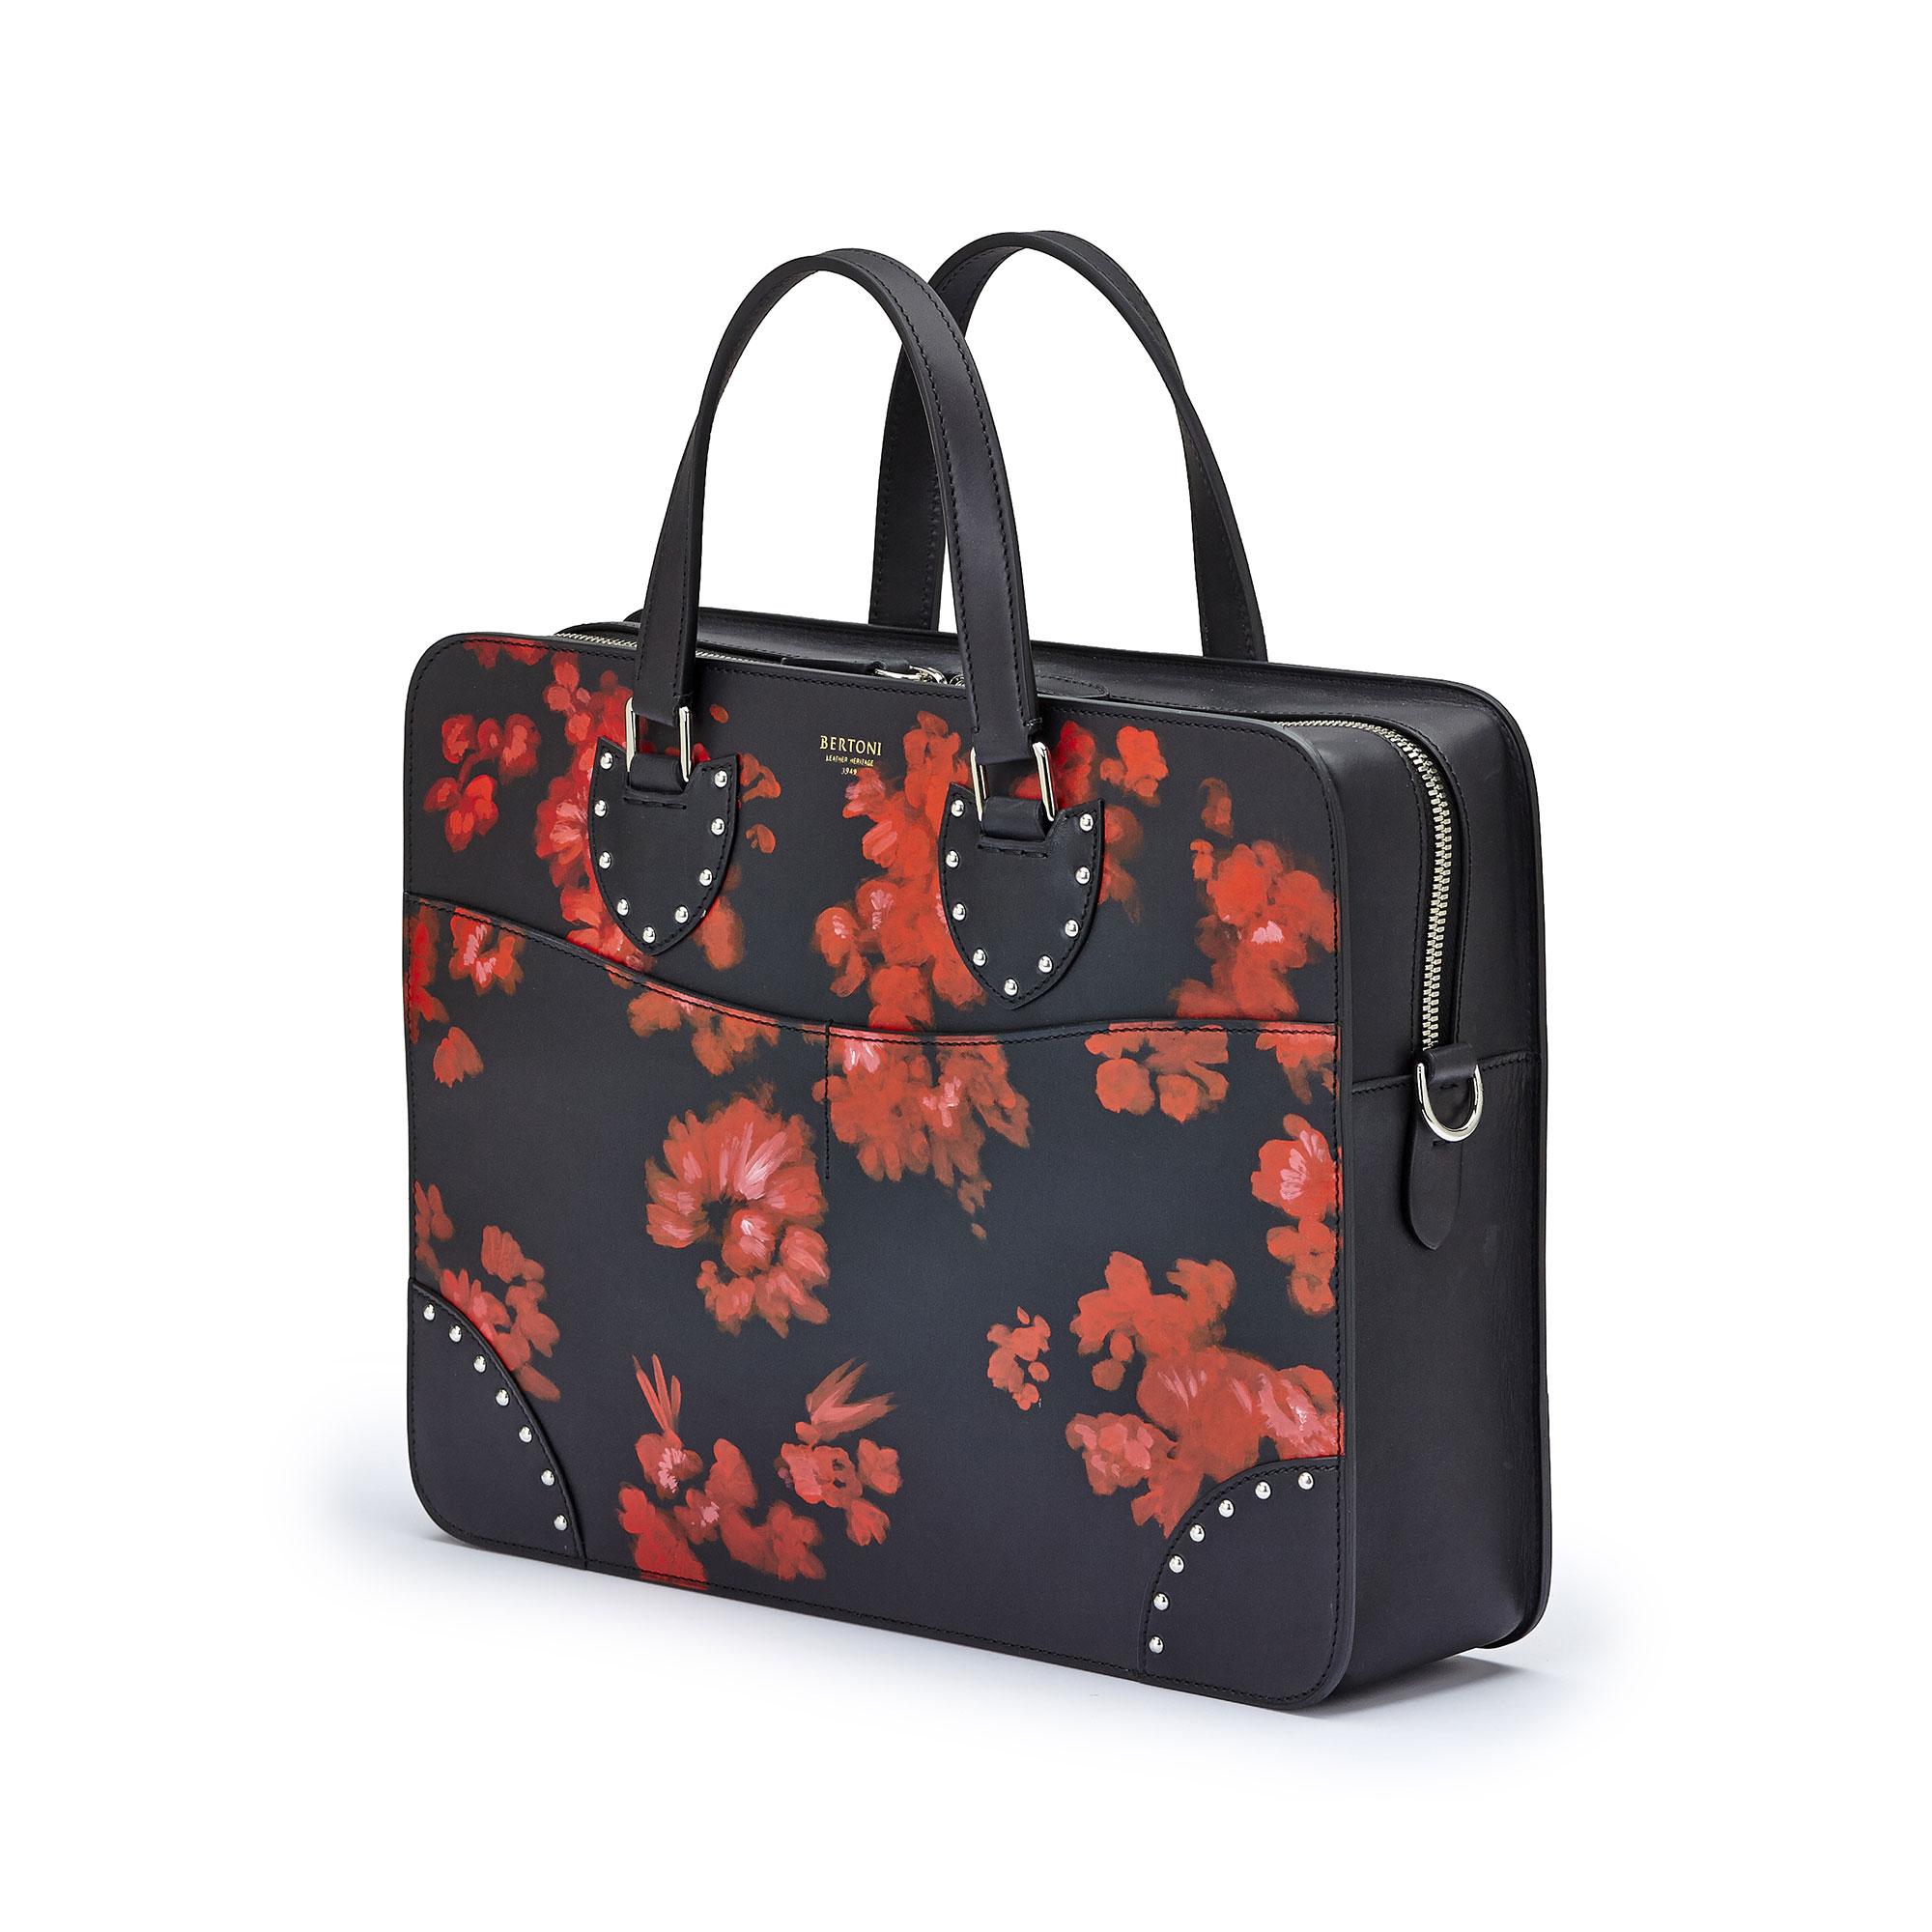 The black with red flowers french calf Double Handle 37 by Bertoni 1949 02